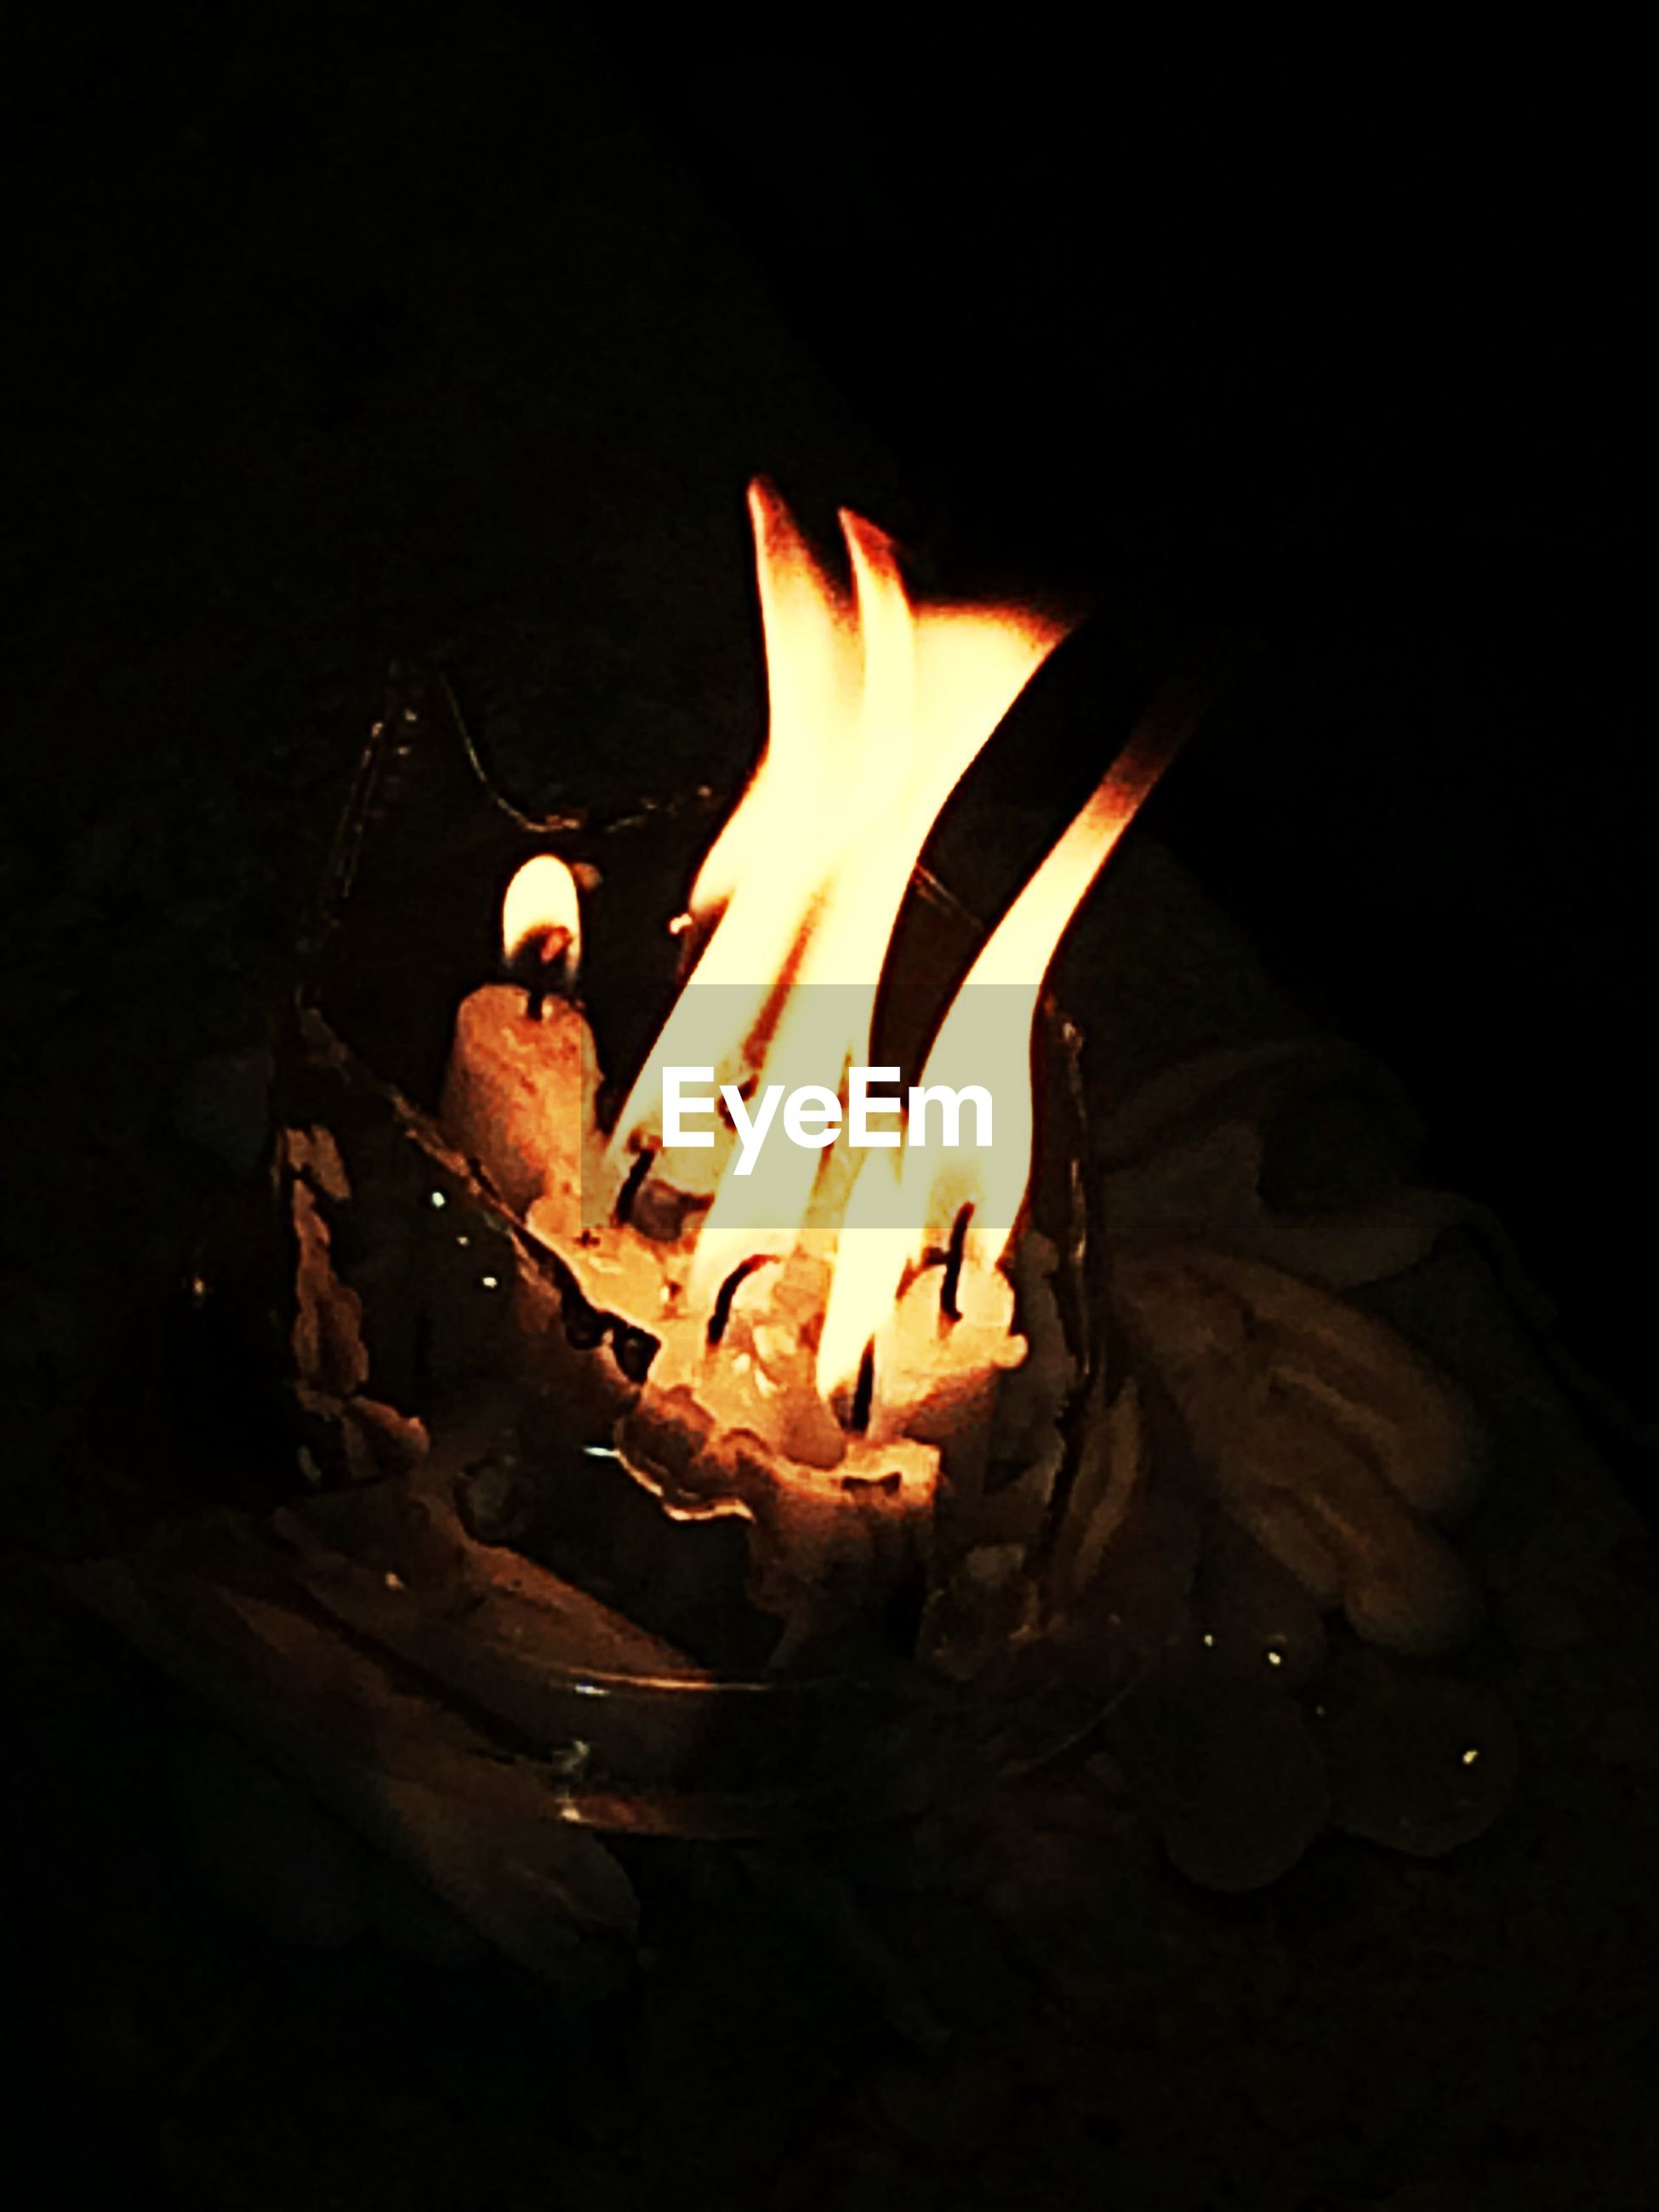 person, burning, black background, flame, indoors, studio shot, fire - natural phenomenon, heat - temperature, close-up, night, holding, part of, dark, cropped, freshness, copy space, unrecognizable person